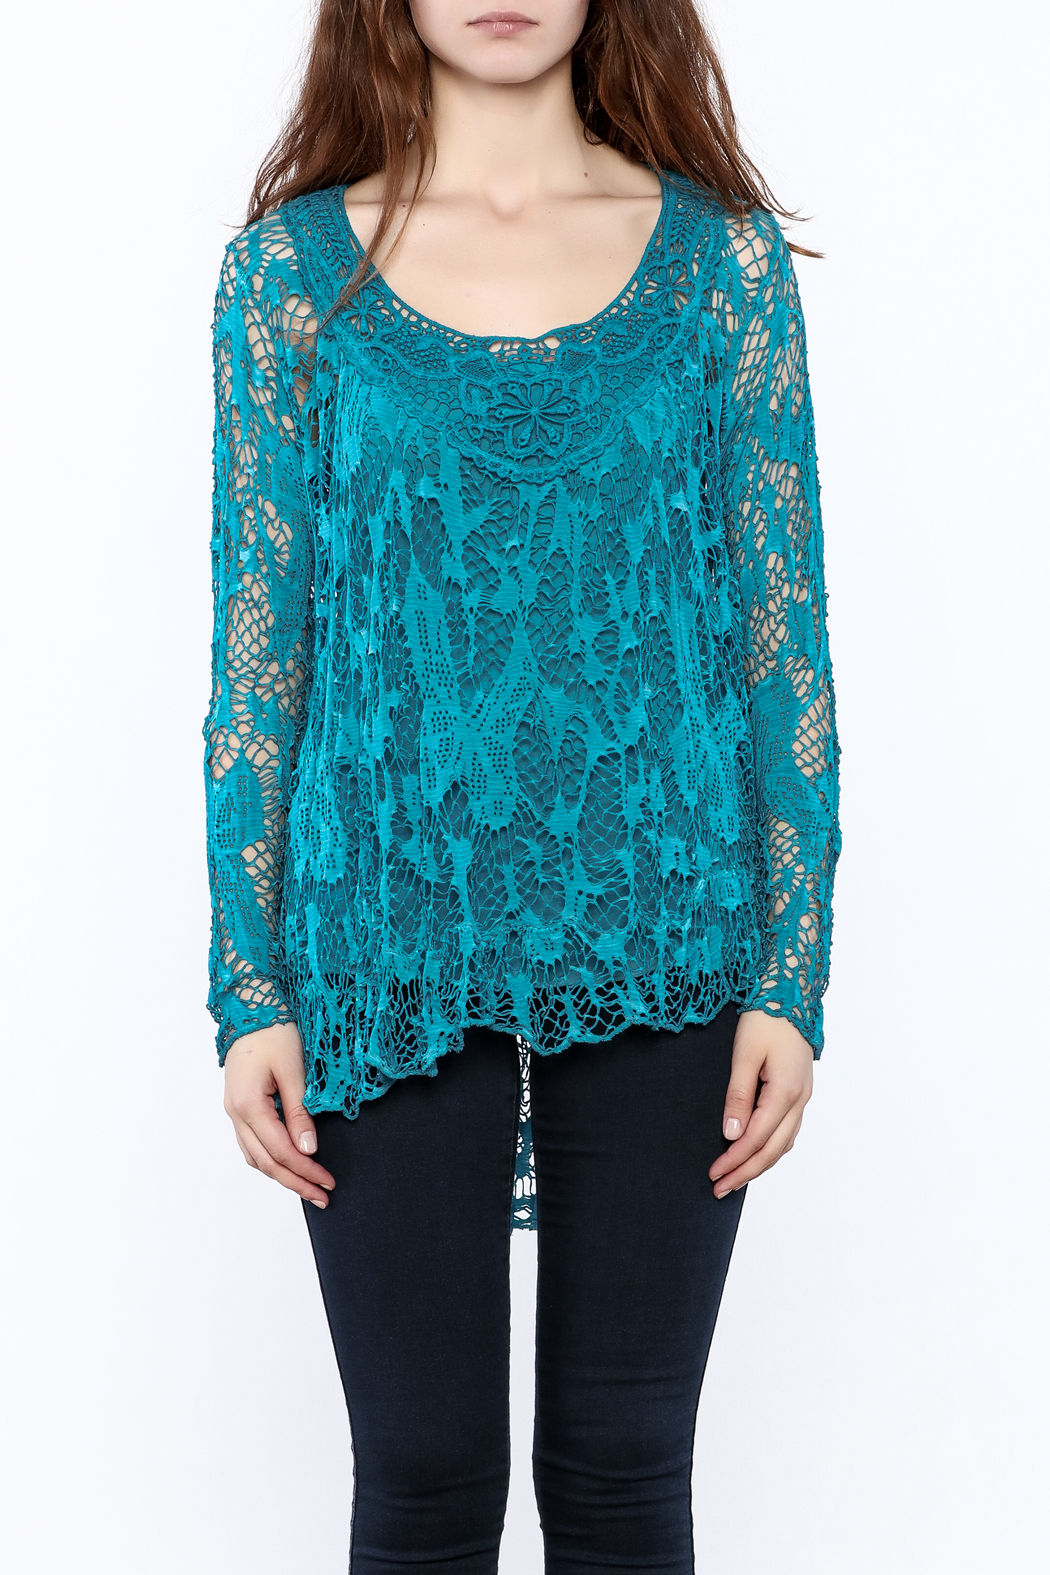 Bella Amore Turquoise Lace Tunic From California By La